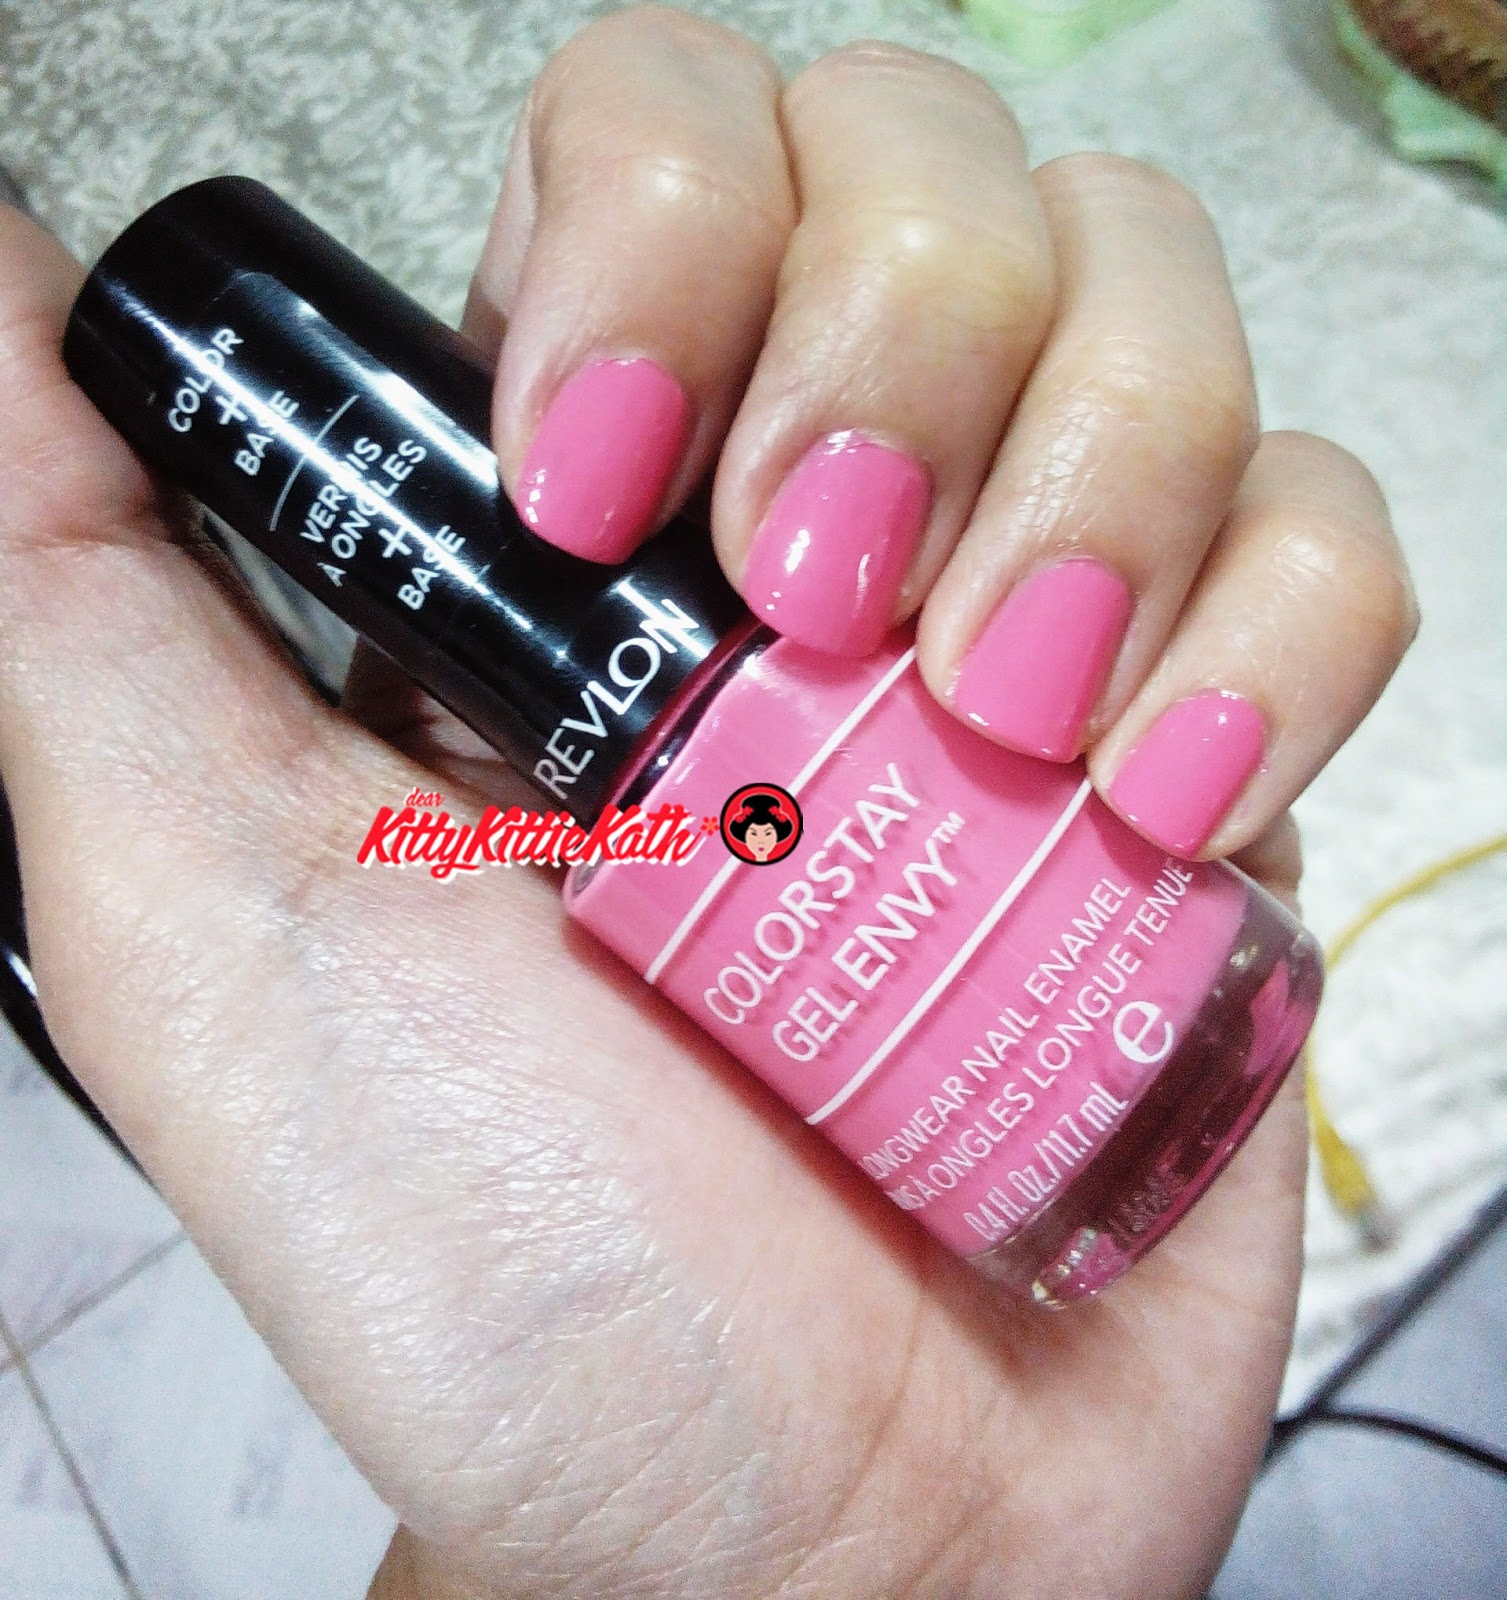 Product Review Revlon Colorstay Gel Envy Nail Enamel In Hot Hand Barbie Pink Shade